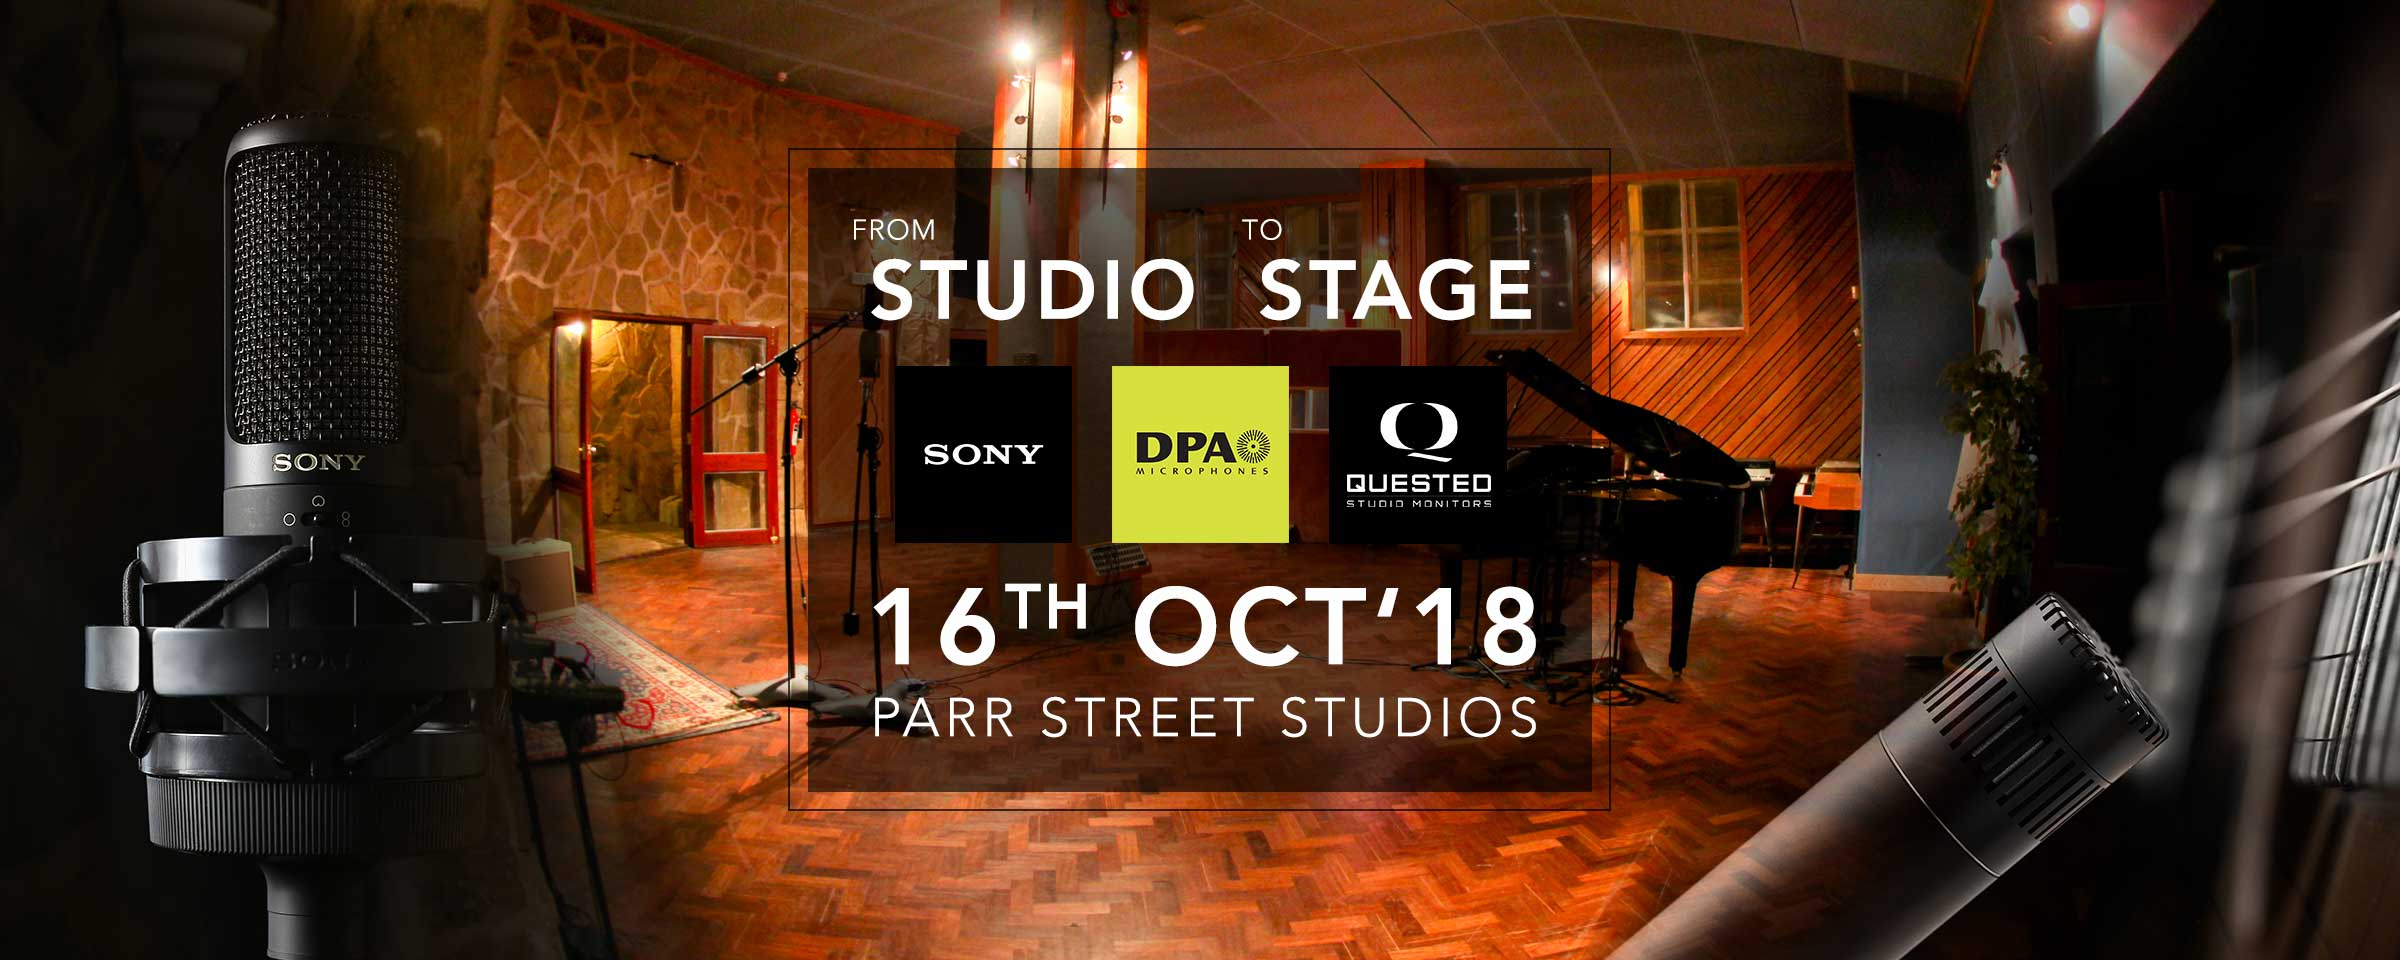 From Studio to Stage at Parr Street Studios